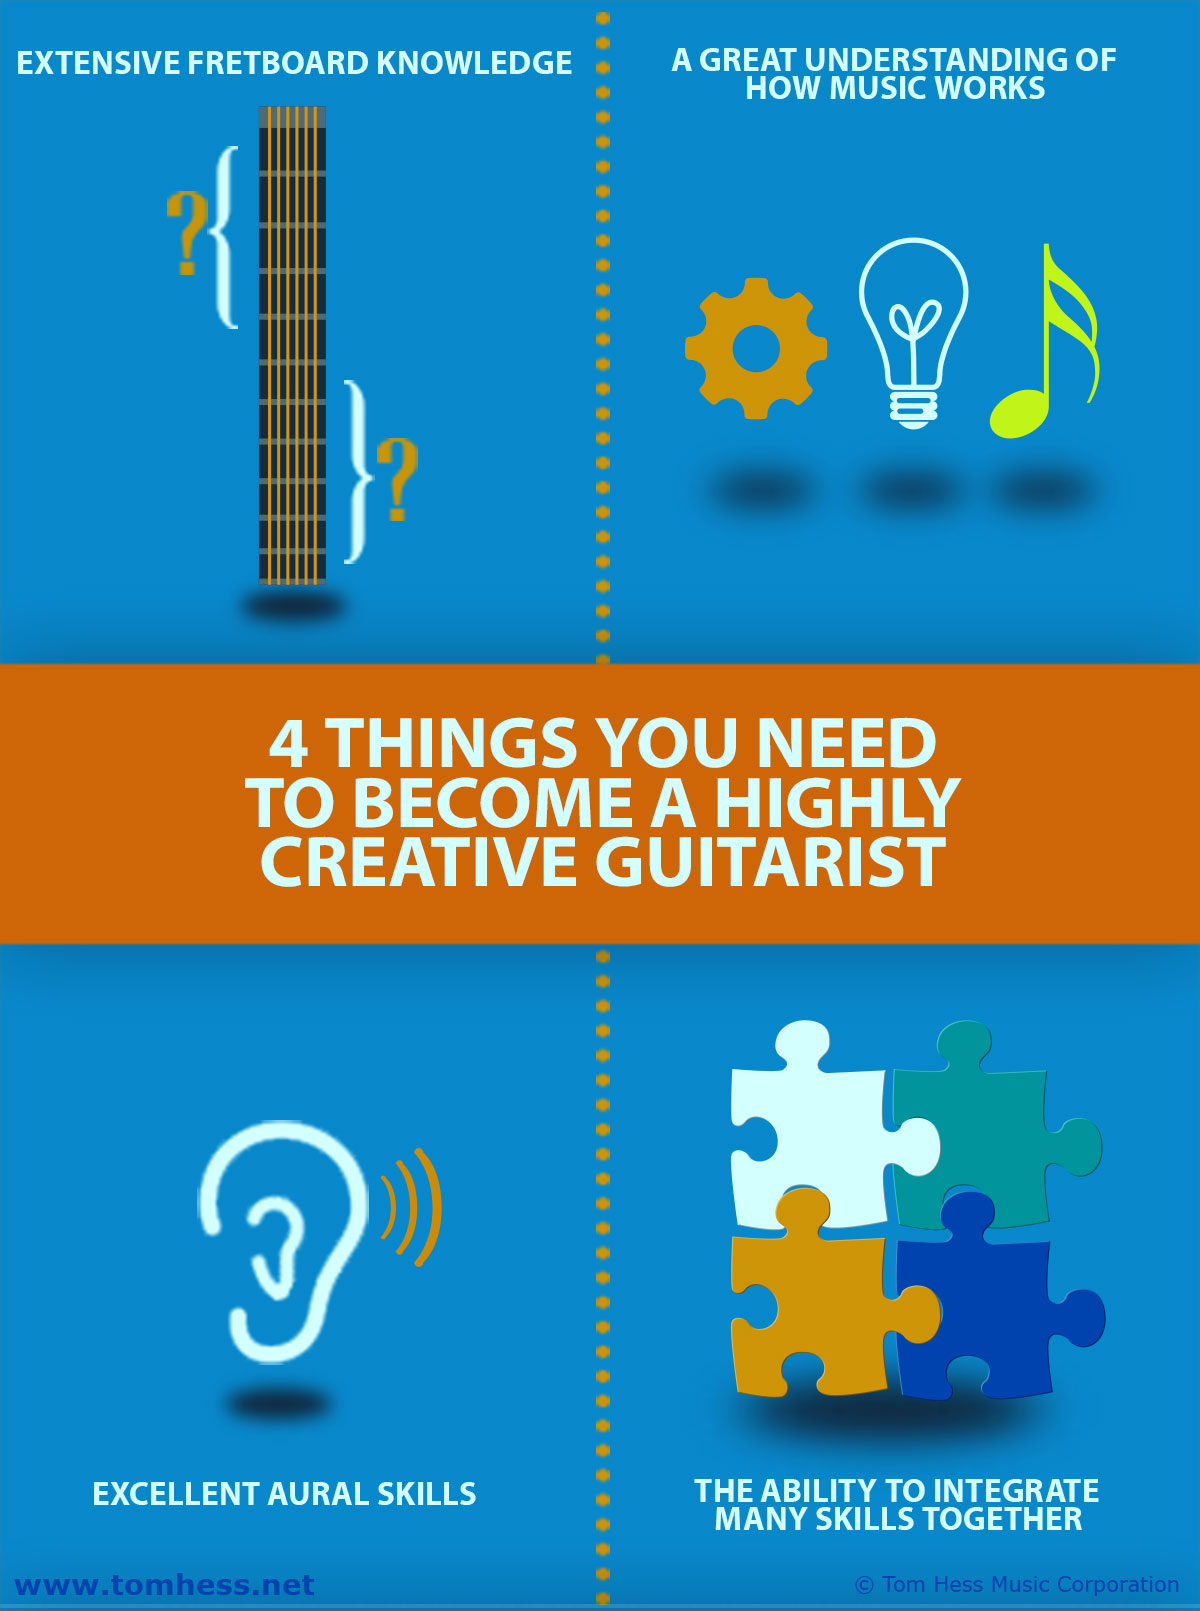 How To Become A Creative Guitarist